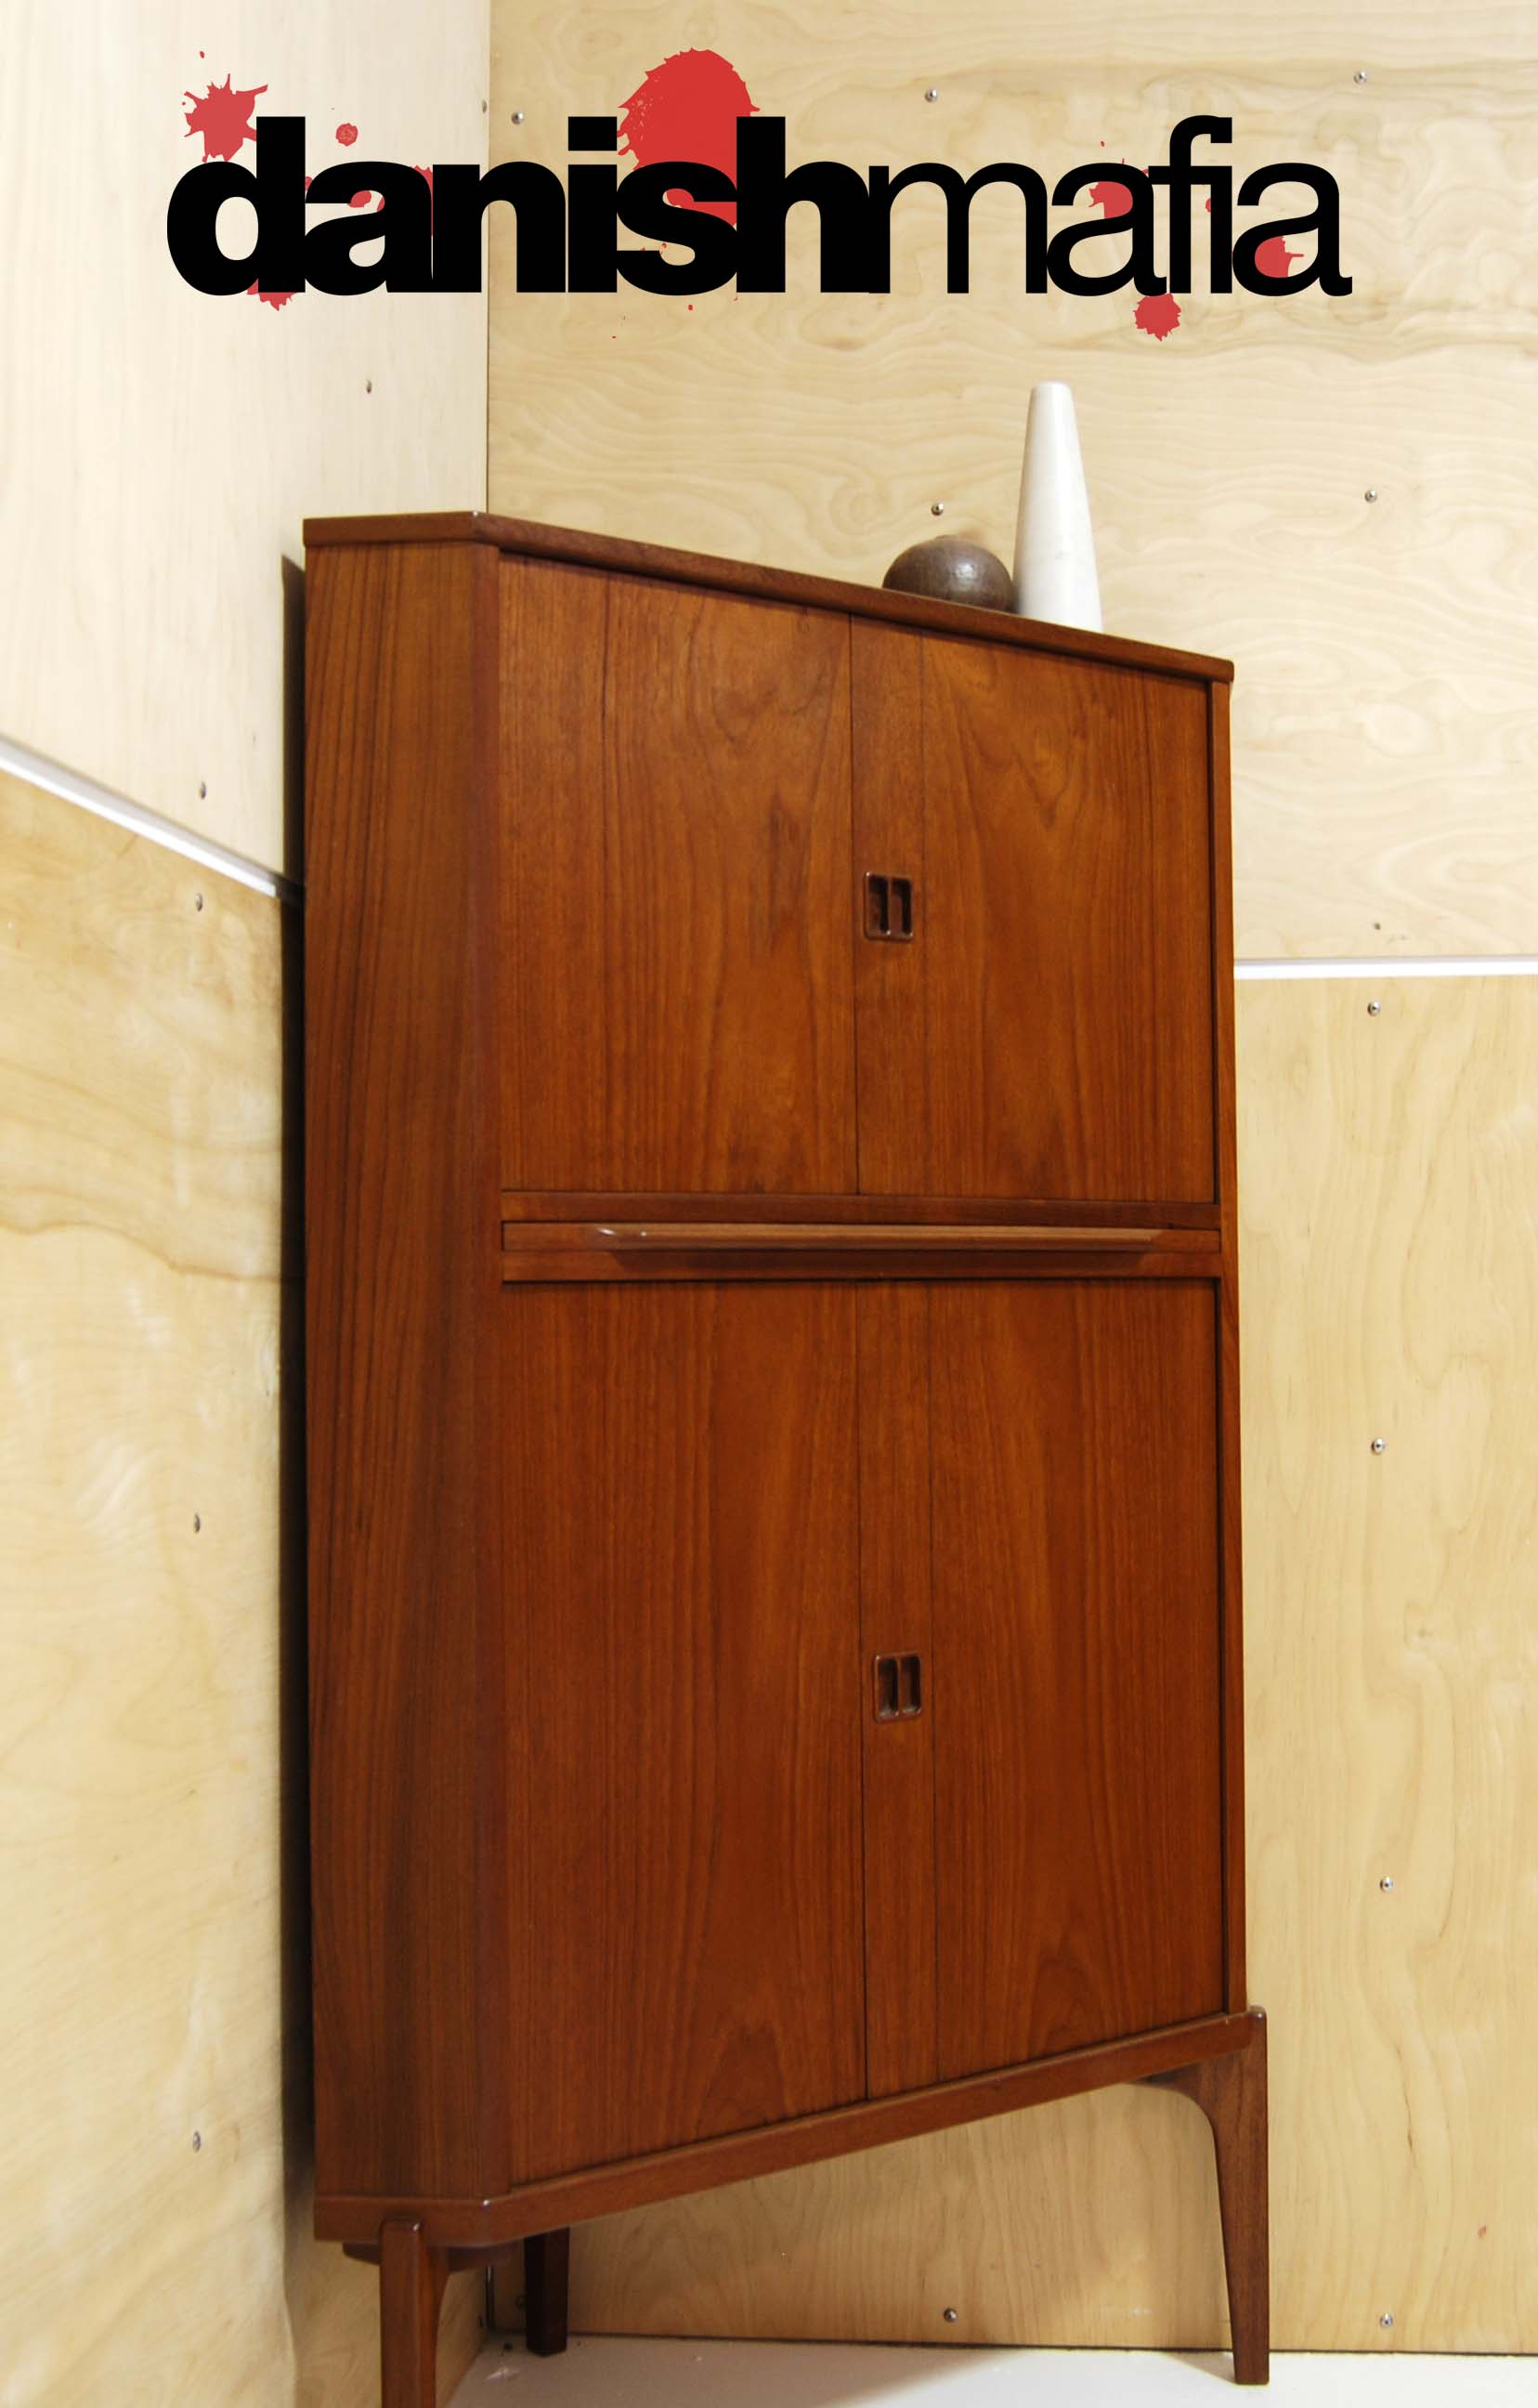 Scandinavian Teak Bedroom Furniture Mid Century Danish Modern Teak Corner Cabinet Hutch Bar Danish Mafia